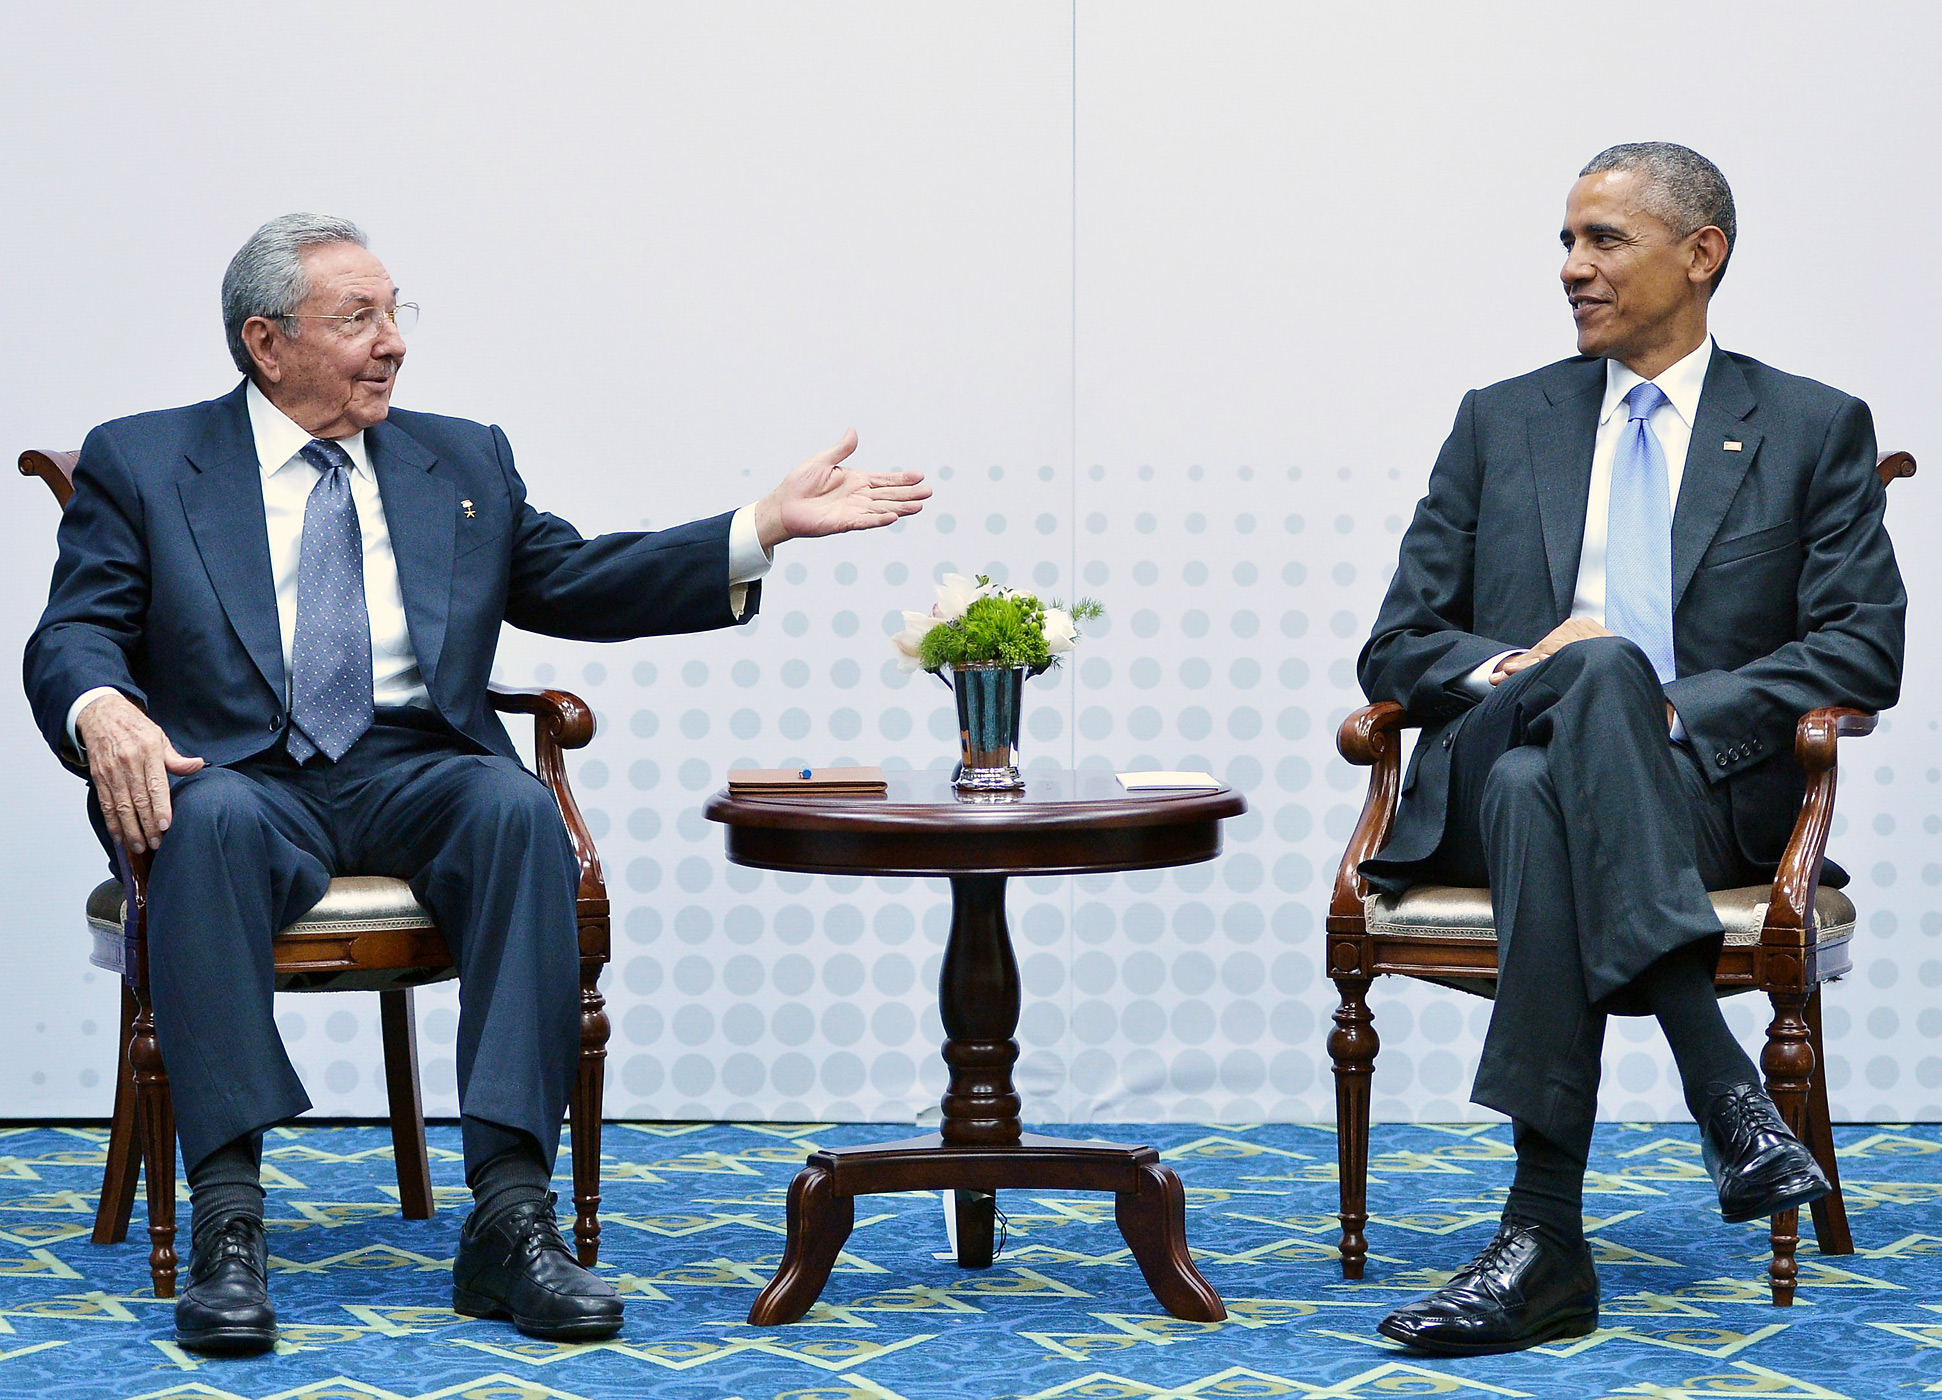 Cuba's President Raul Castro, left, speaks during a meeting with President Barack Obama on the sidelines of the Summit of the Americas at the ATLAPA Convention center on April 11, 2015 in Panama City, Panama.